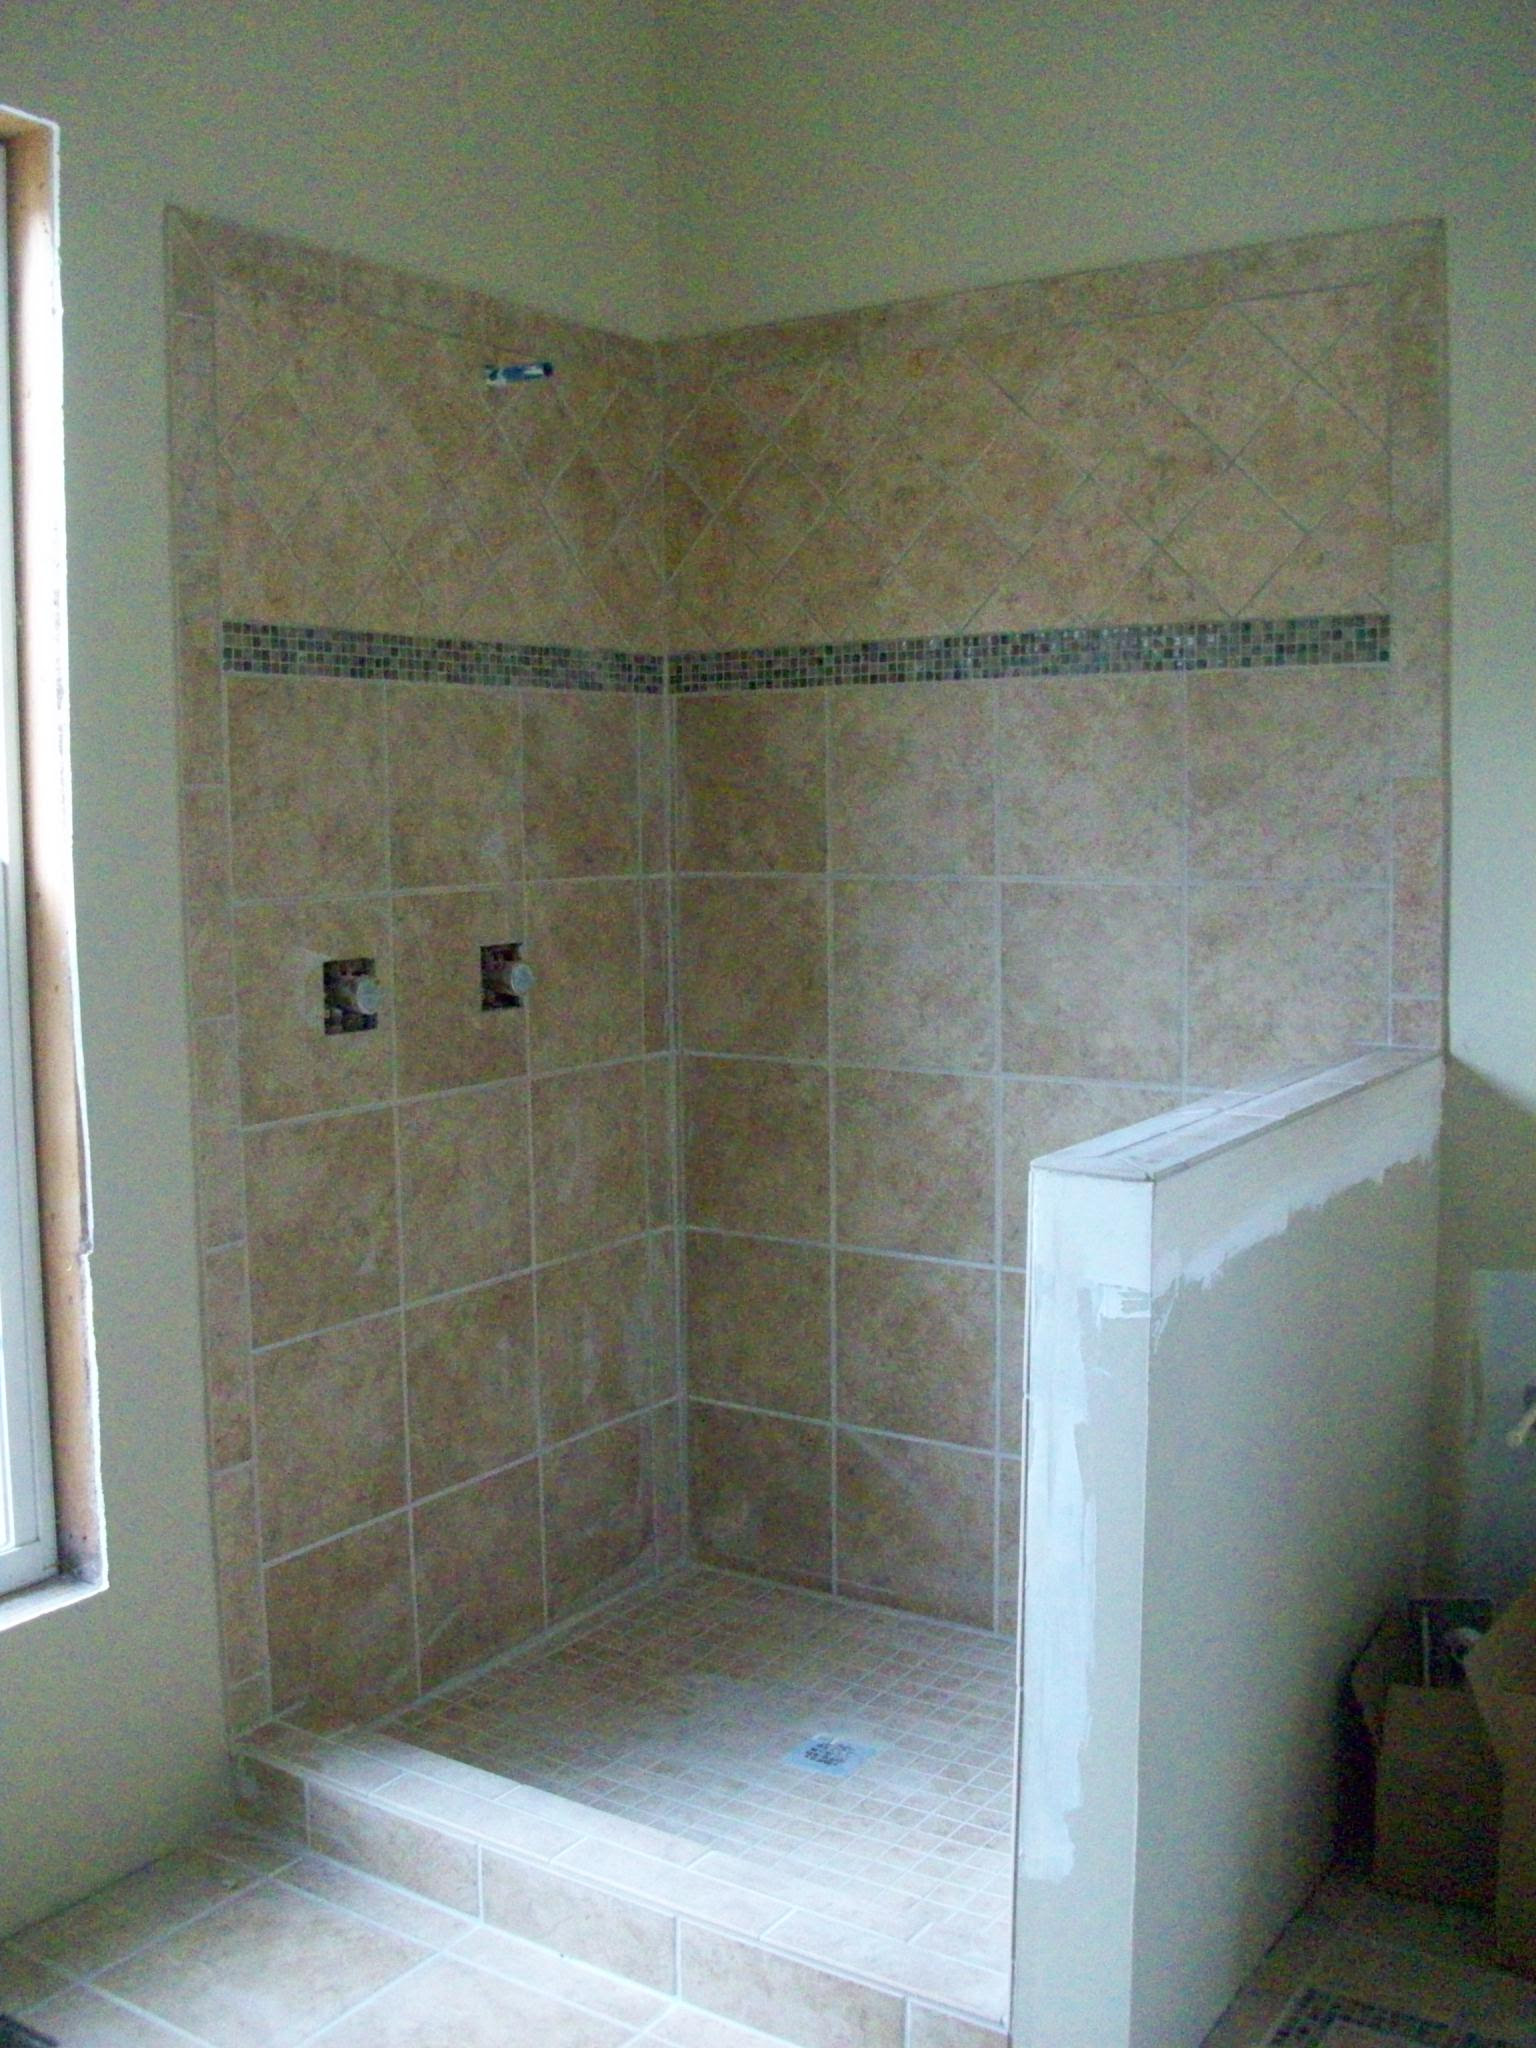 Our Old House Renovation: Tiling the Master Bath | What ...